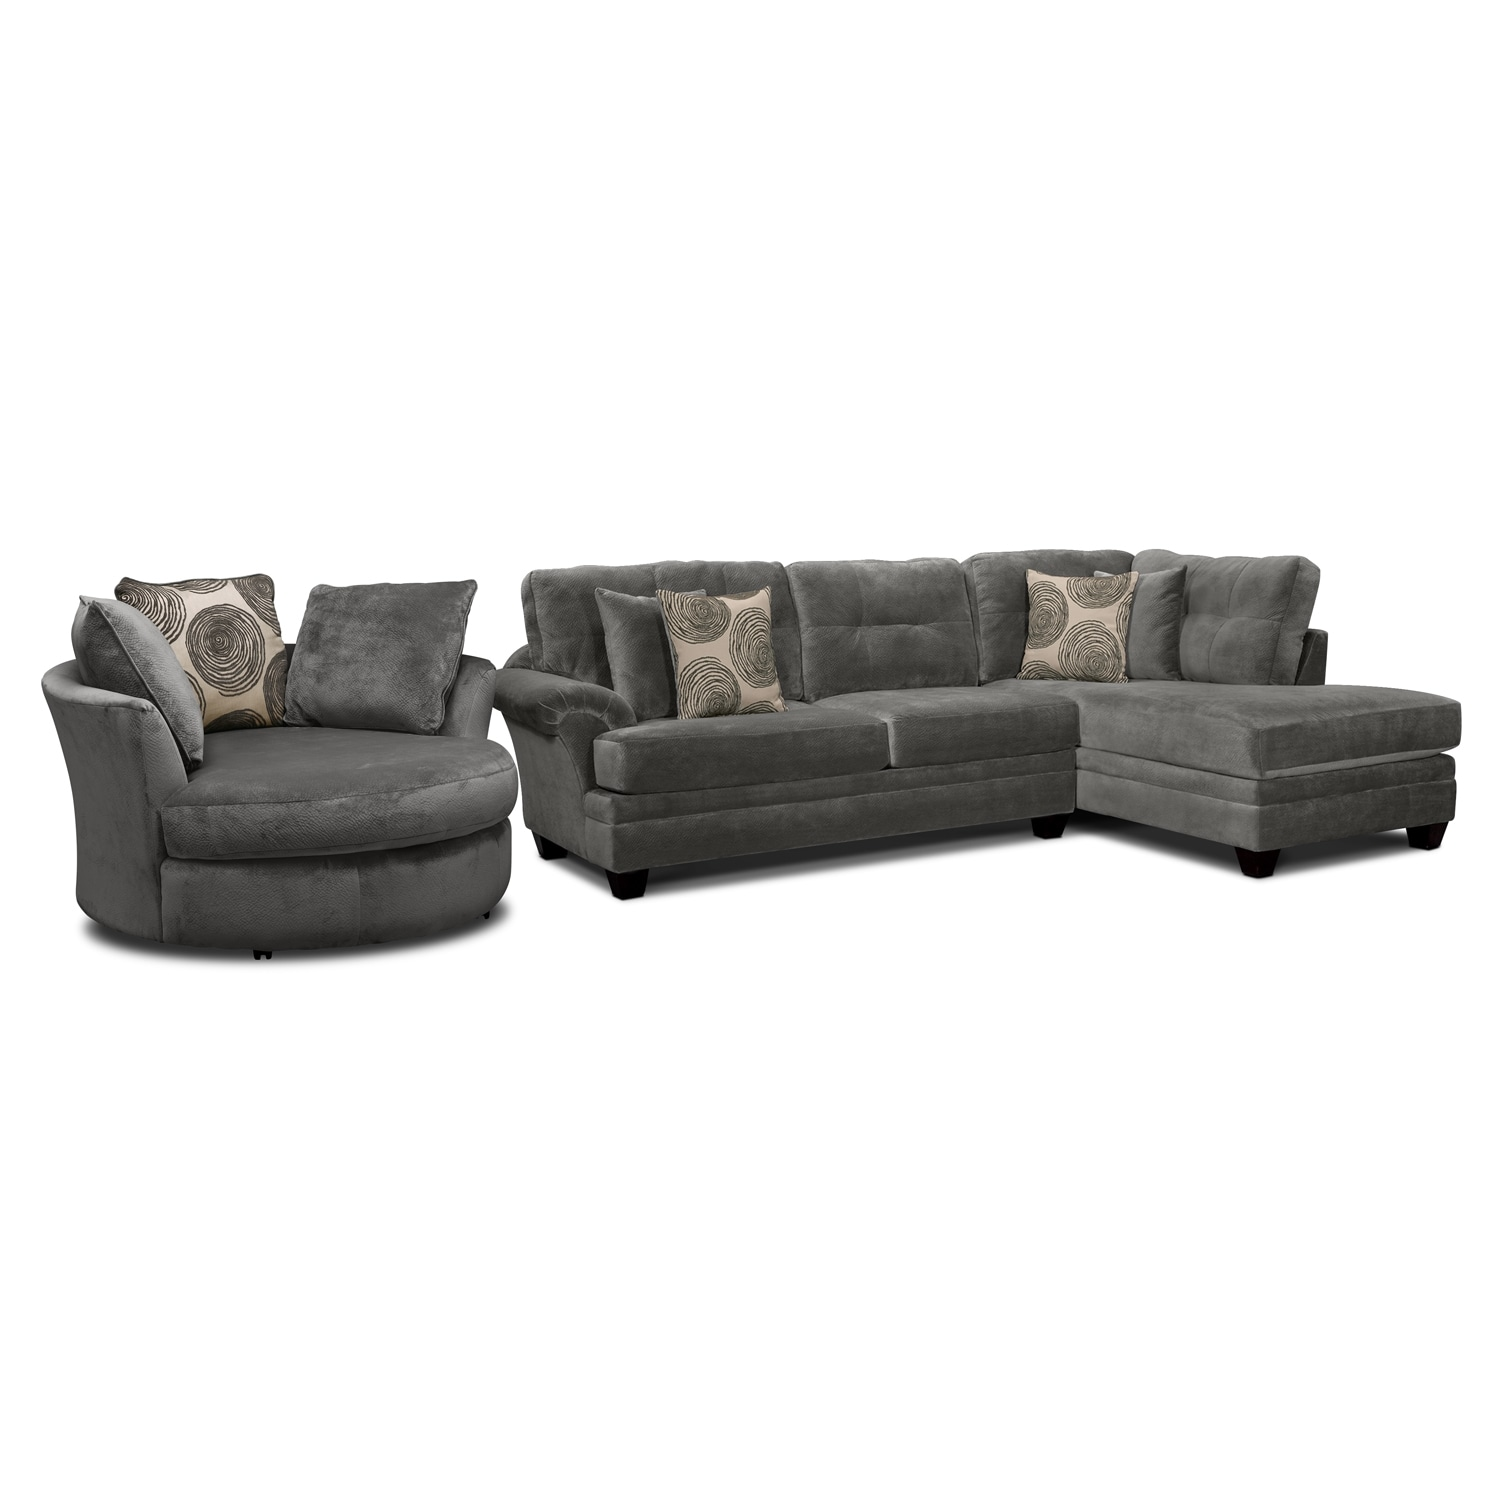 Cordoba gray ii upholstery 2 pc sectional and swivel for Sectional sofa swivel chair